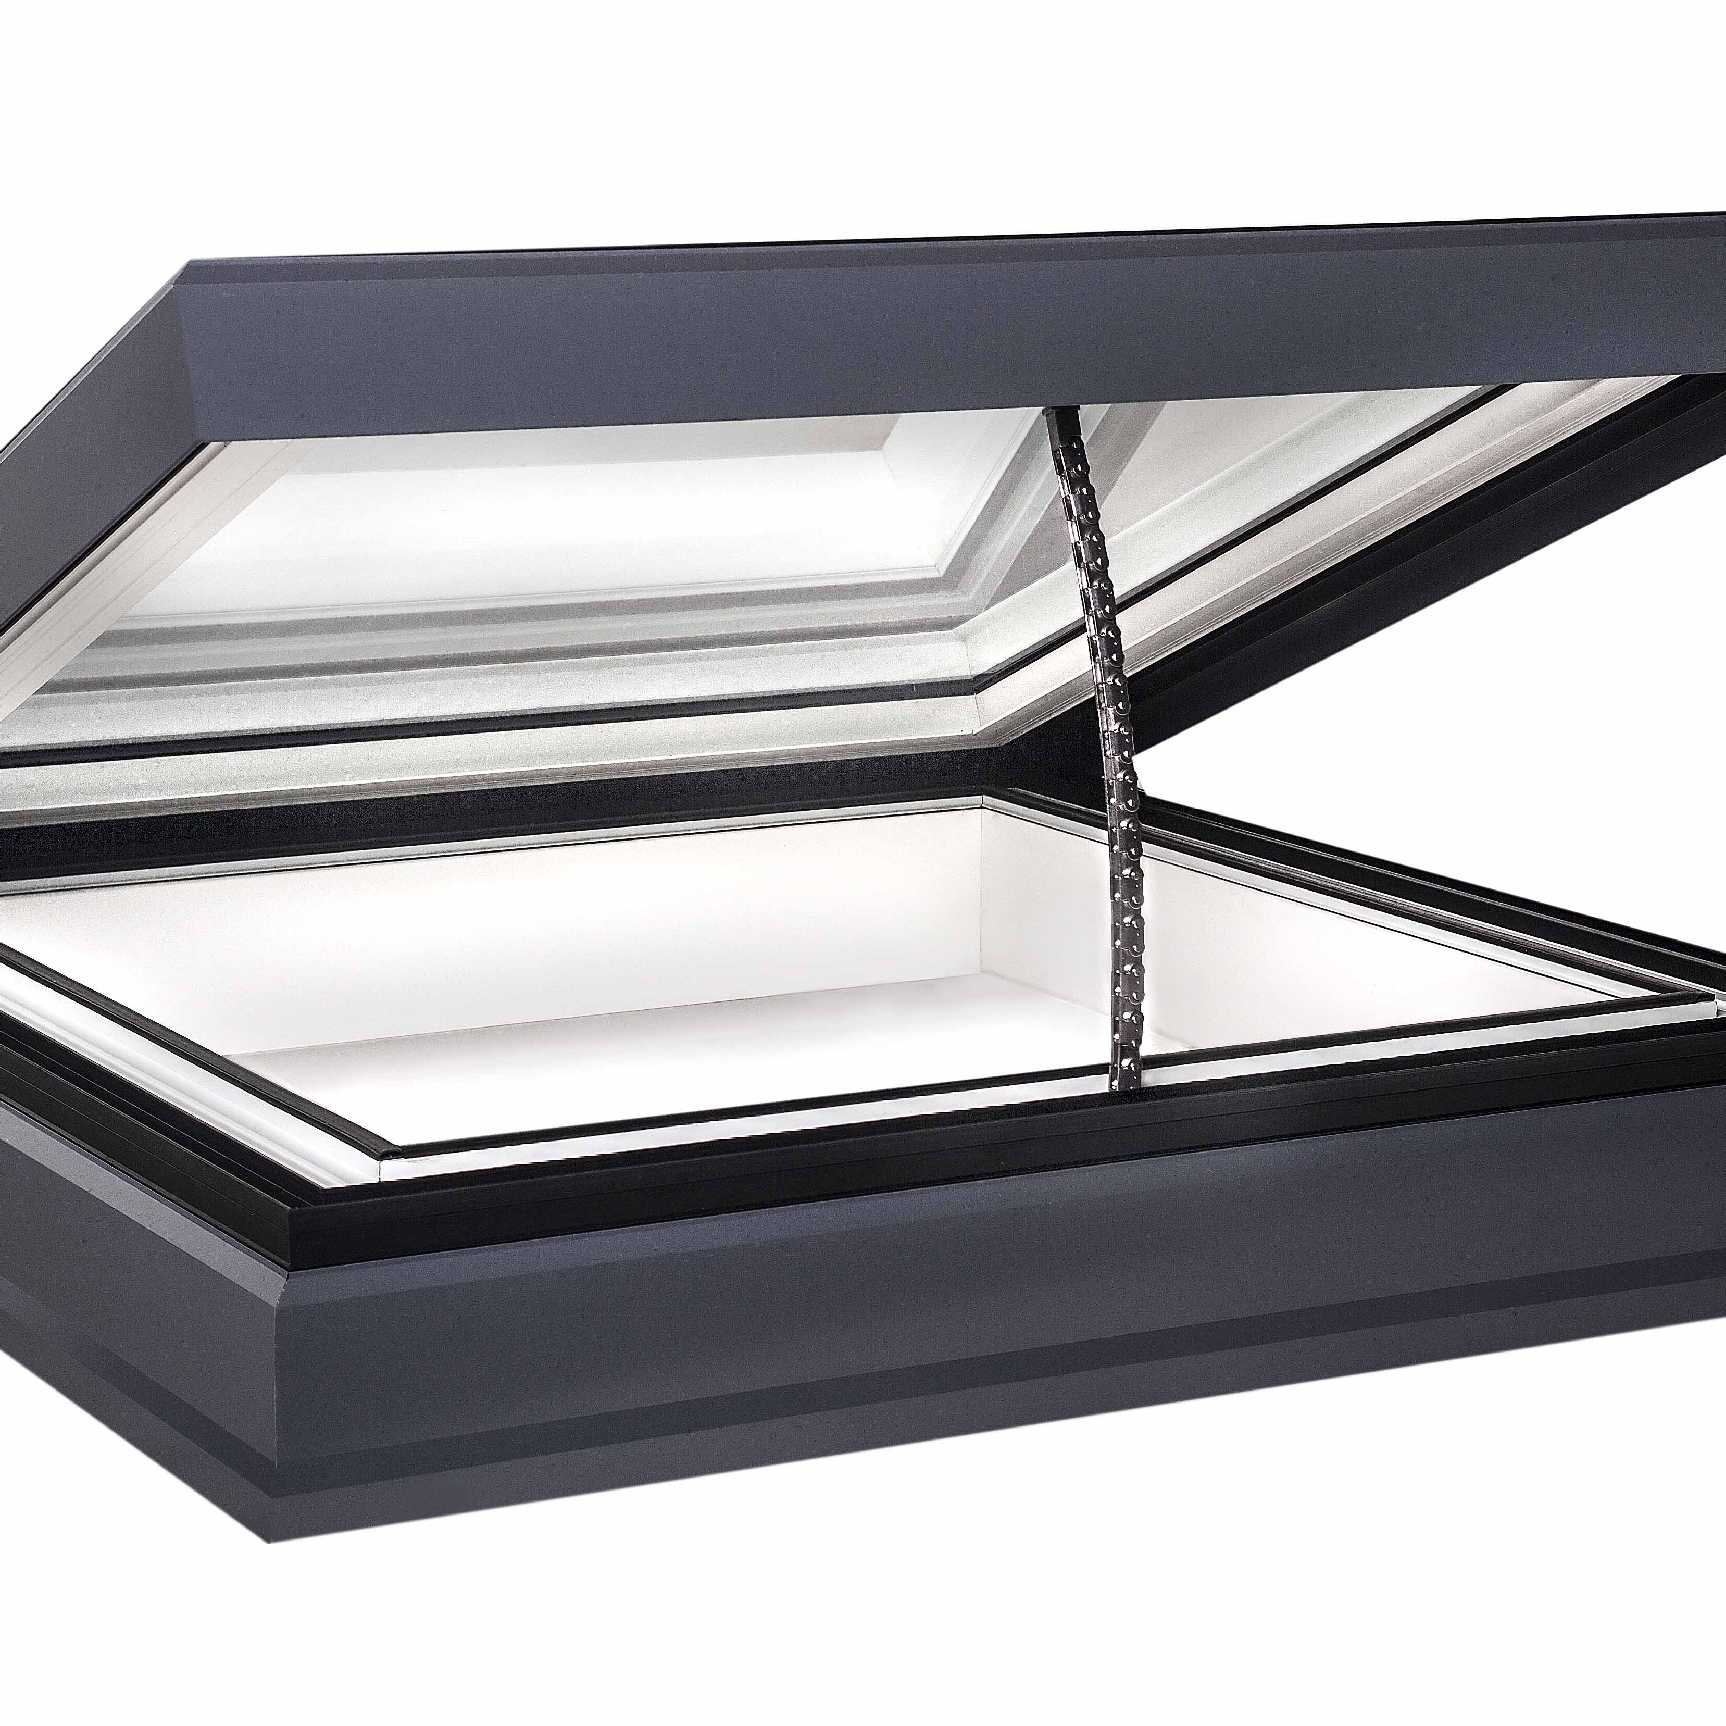 Affordable EcoGard Flat Roof light, Triple Glazed, Electric Opening, 1,000mm x 1,000mm